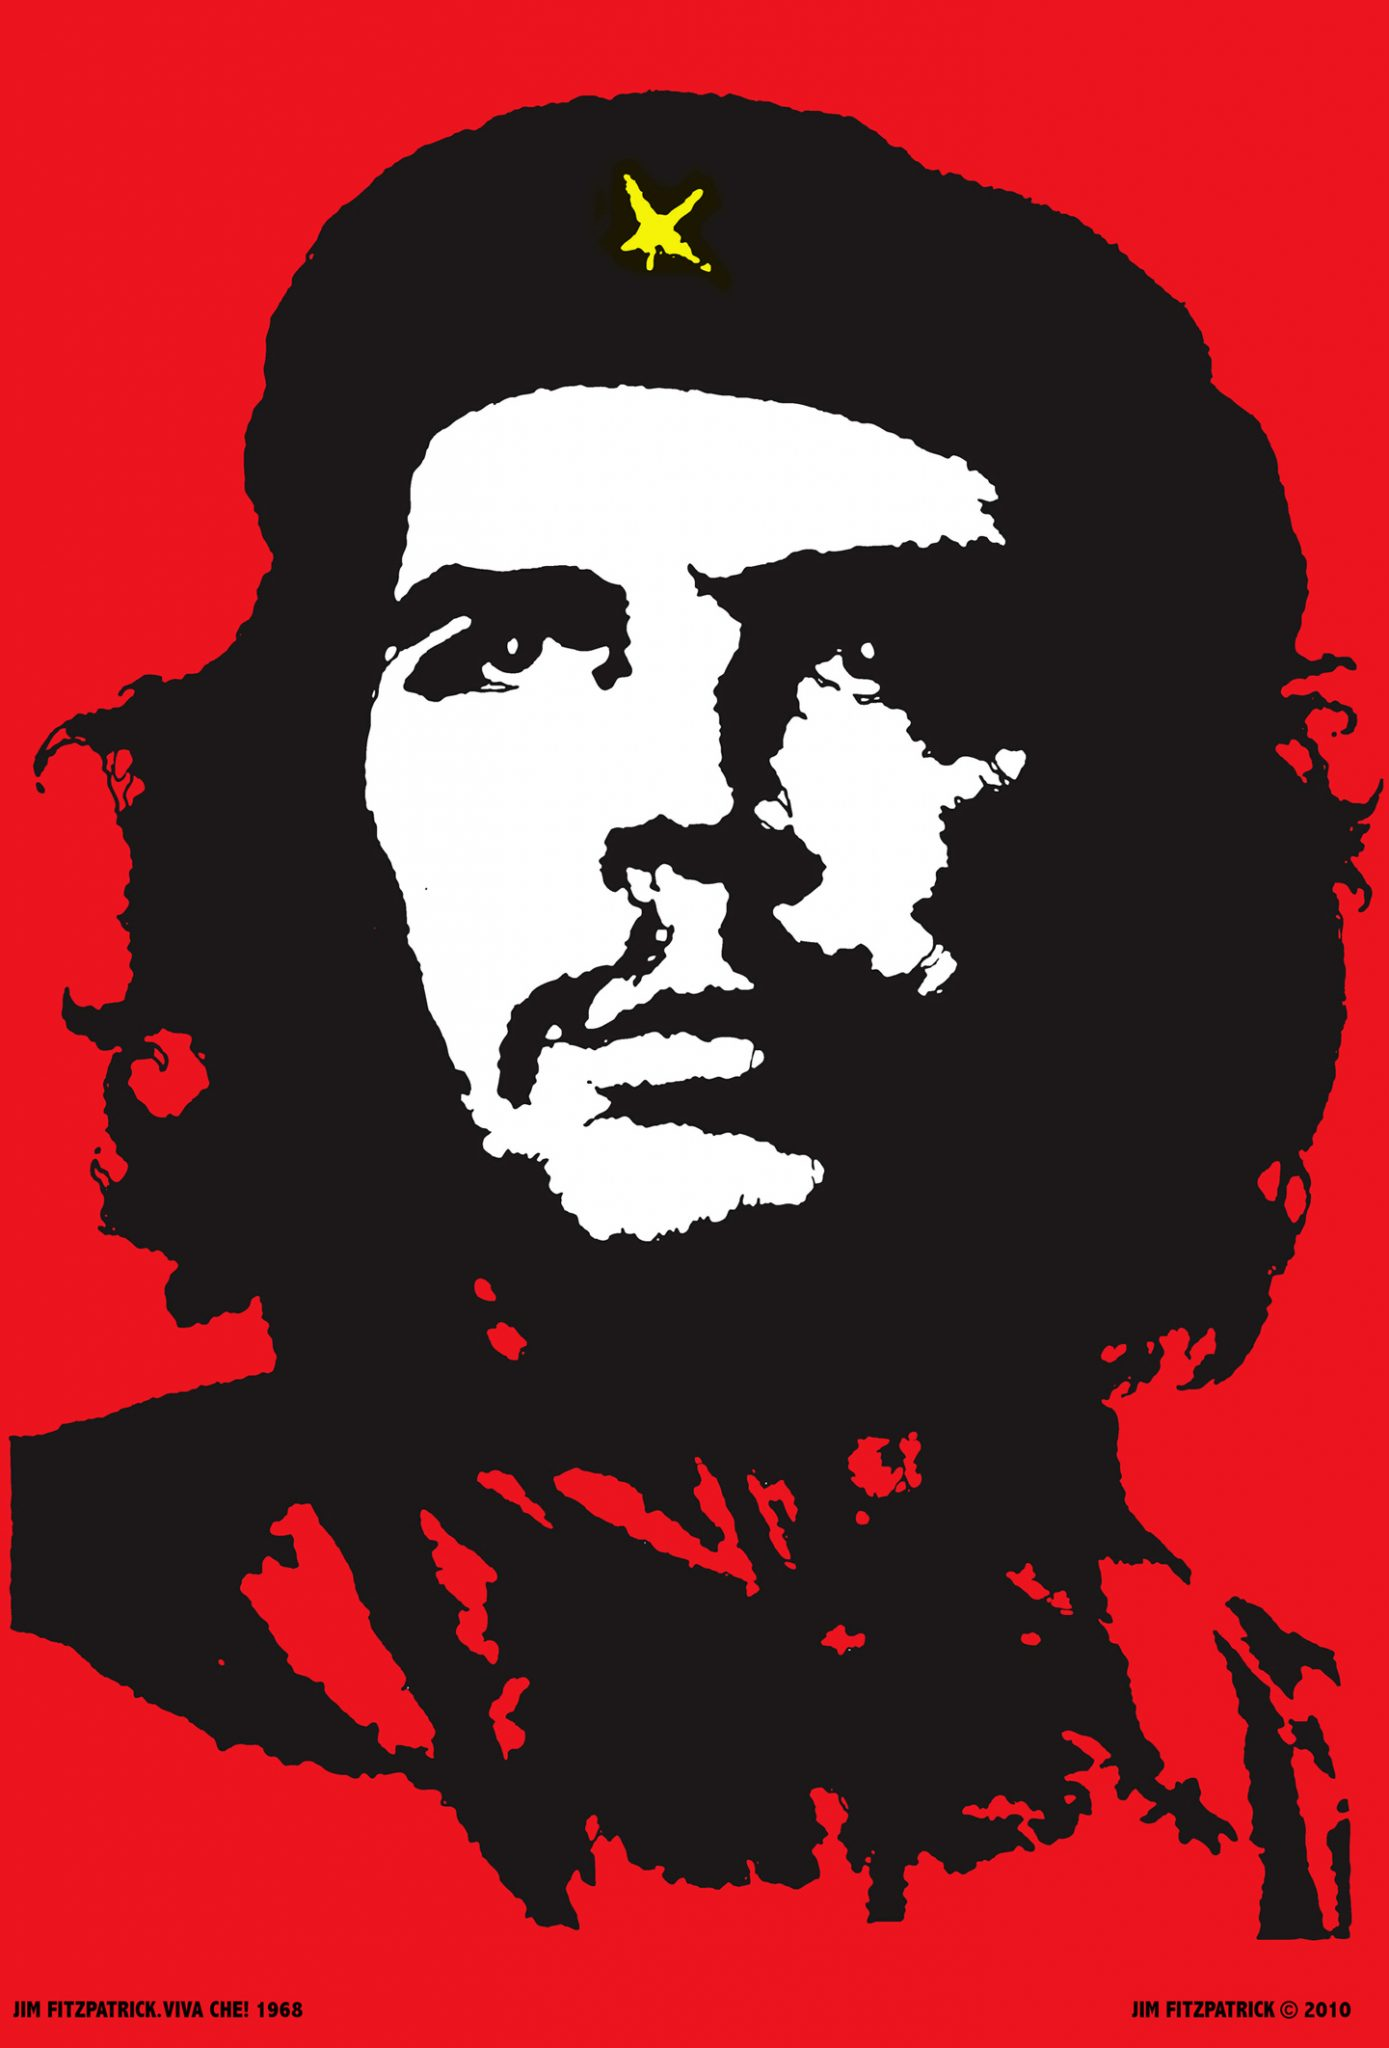 9d9c5c303cee Che Guevara VIVA CHE 1968! The original red and black Che Guevara poster  reproduced exactly as in 1968 from the original artwork.